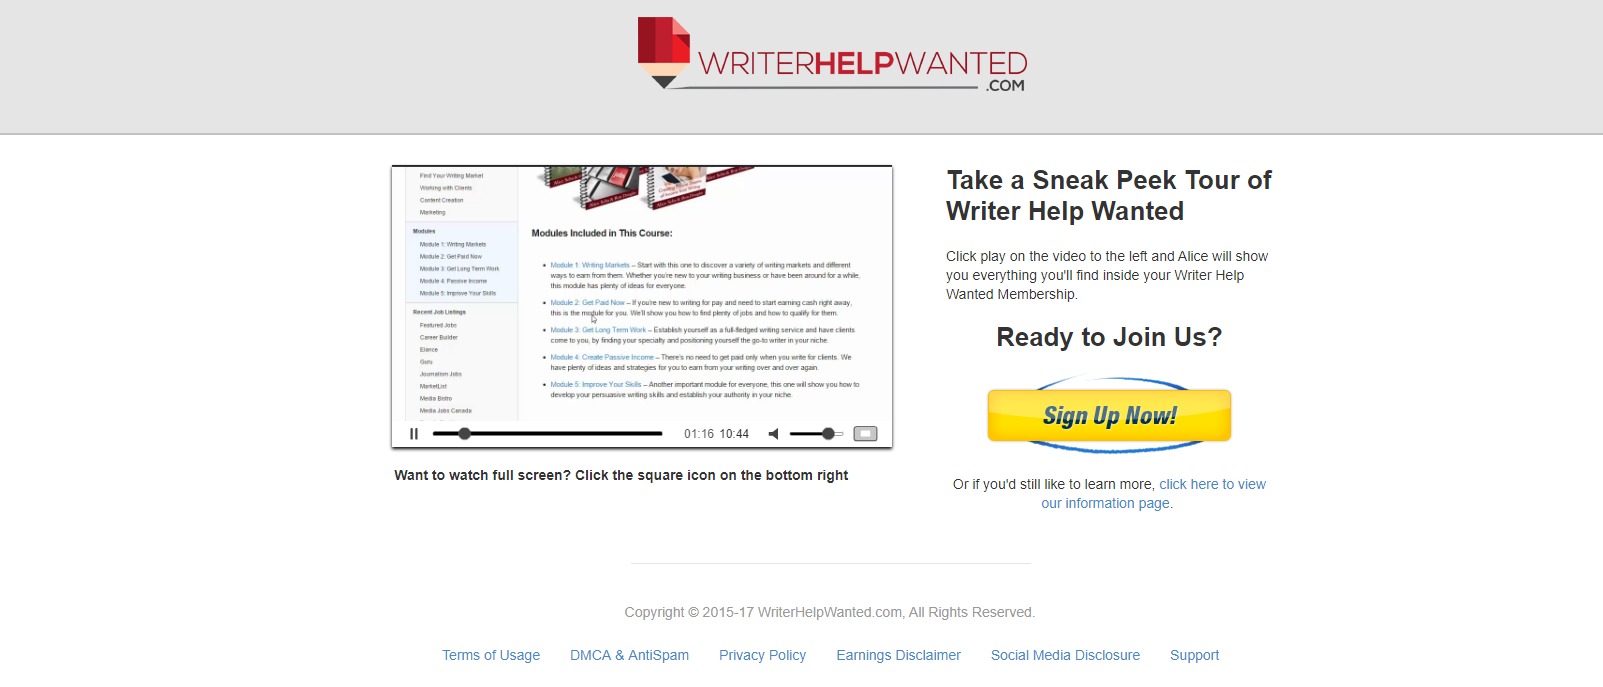 Find writing jobs online